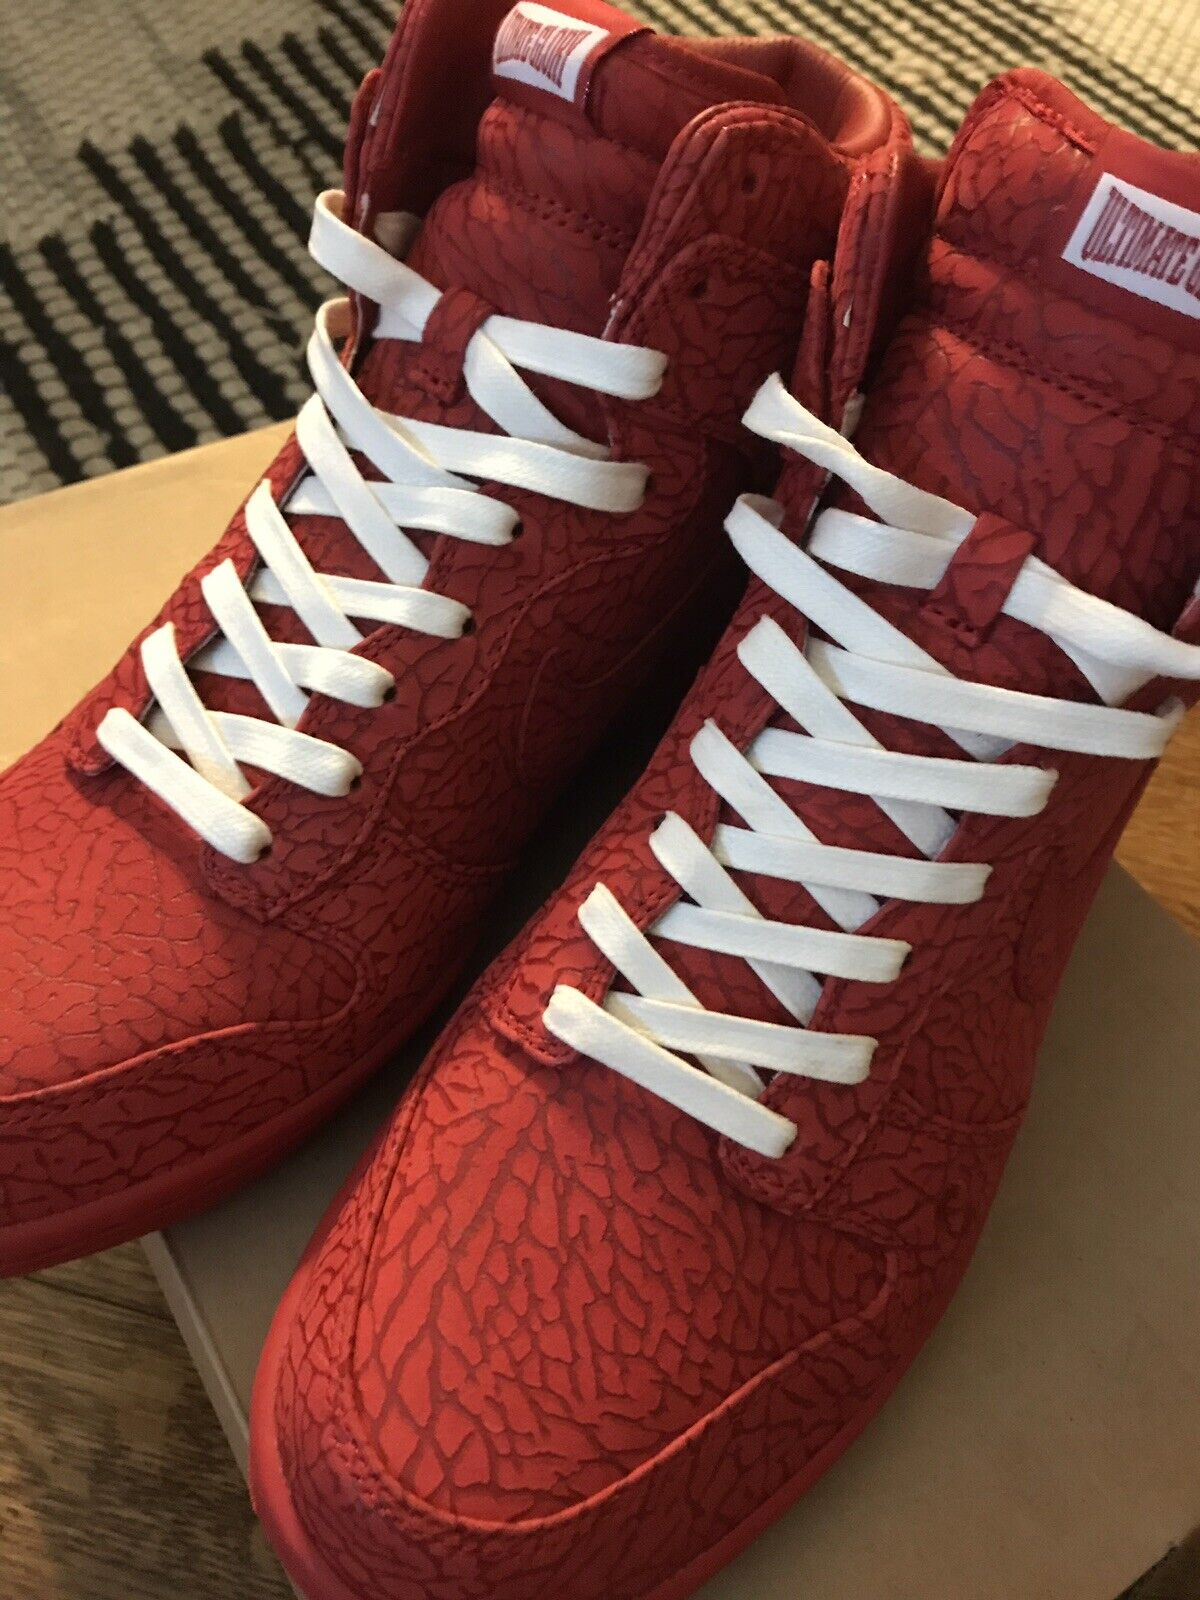 2008 NIKE DUNK HIGH PREMIUM ULTIMATE GLORY CHAVEZ Supreme rosso 323955-661 10.5